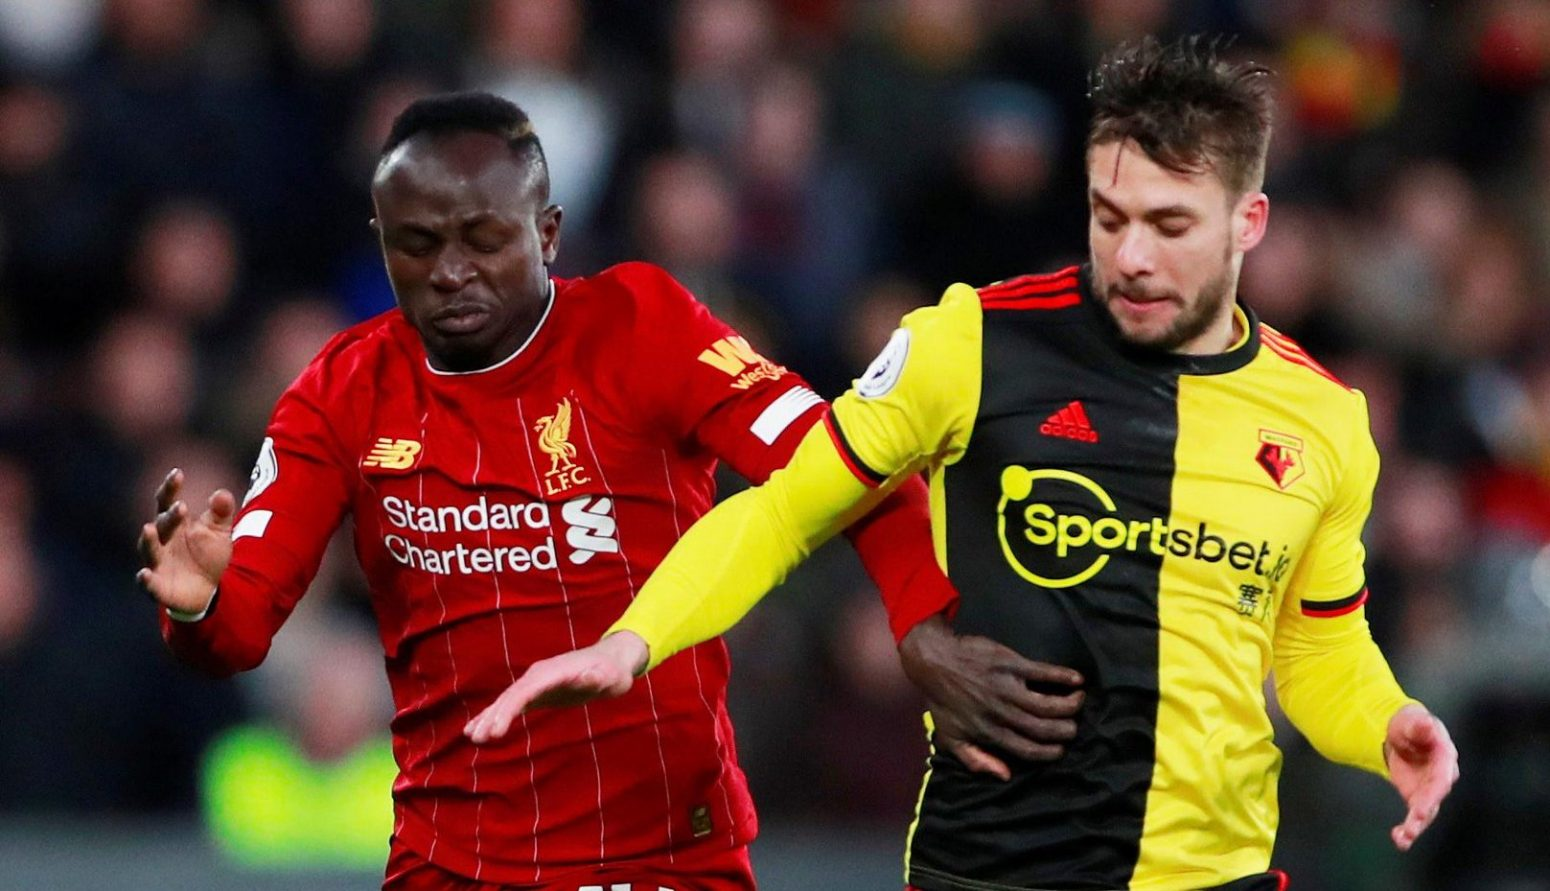 Watford 3-0 Liverpool – As it happened & reaction